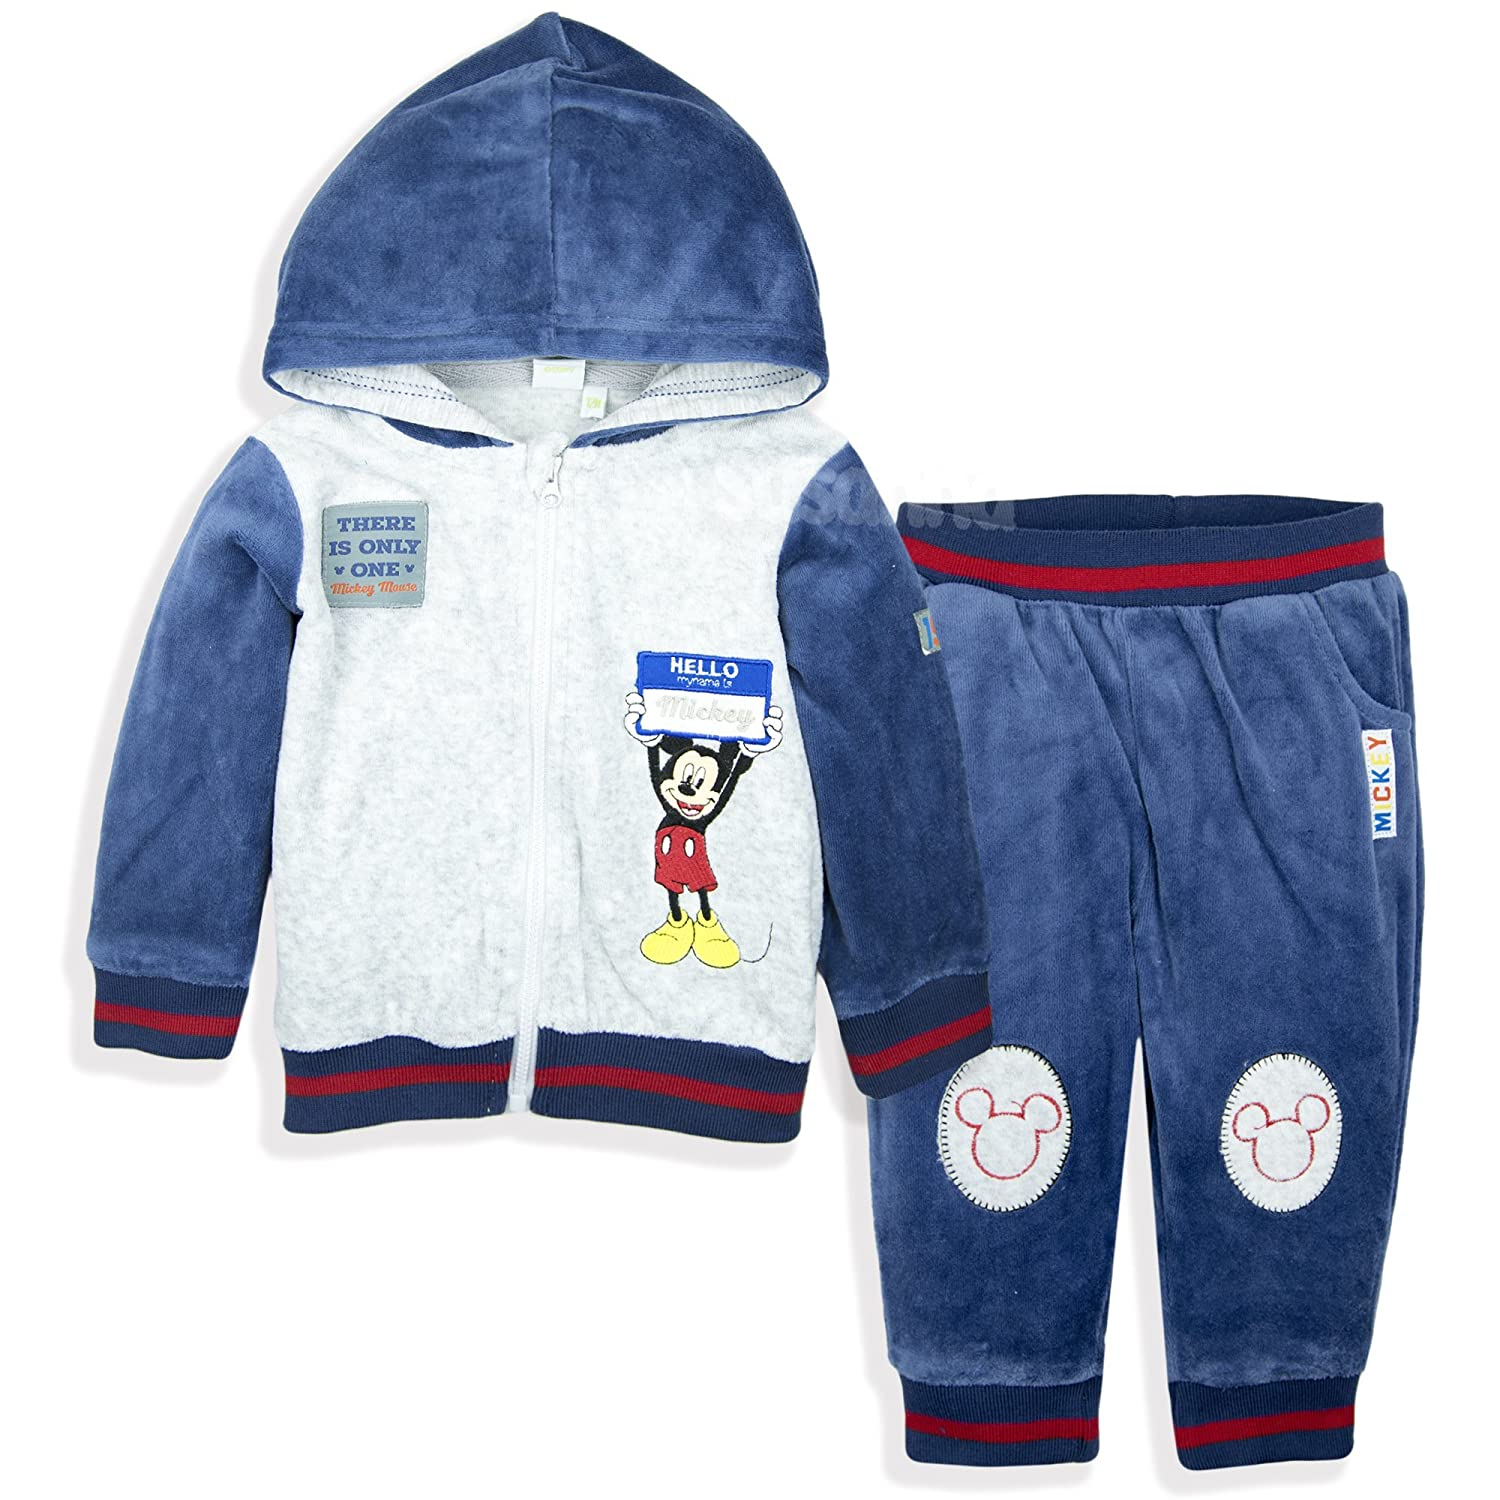 Disney Mickey Mouse Baby Boys Clothing Outfit Tracksuit Set Joggers Hoodie Warm Velvet - Navy 12